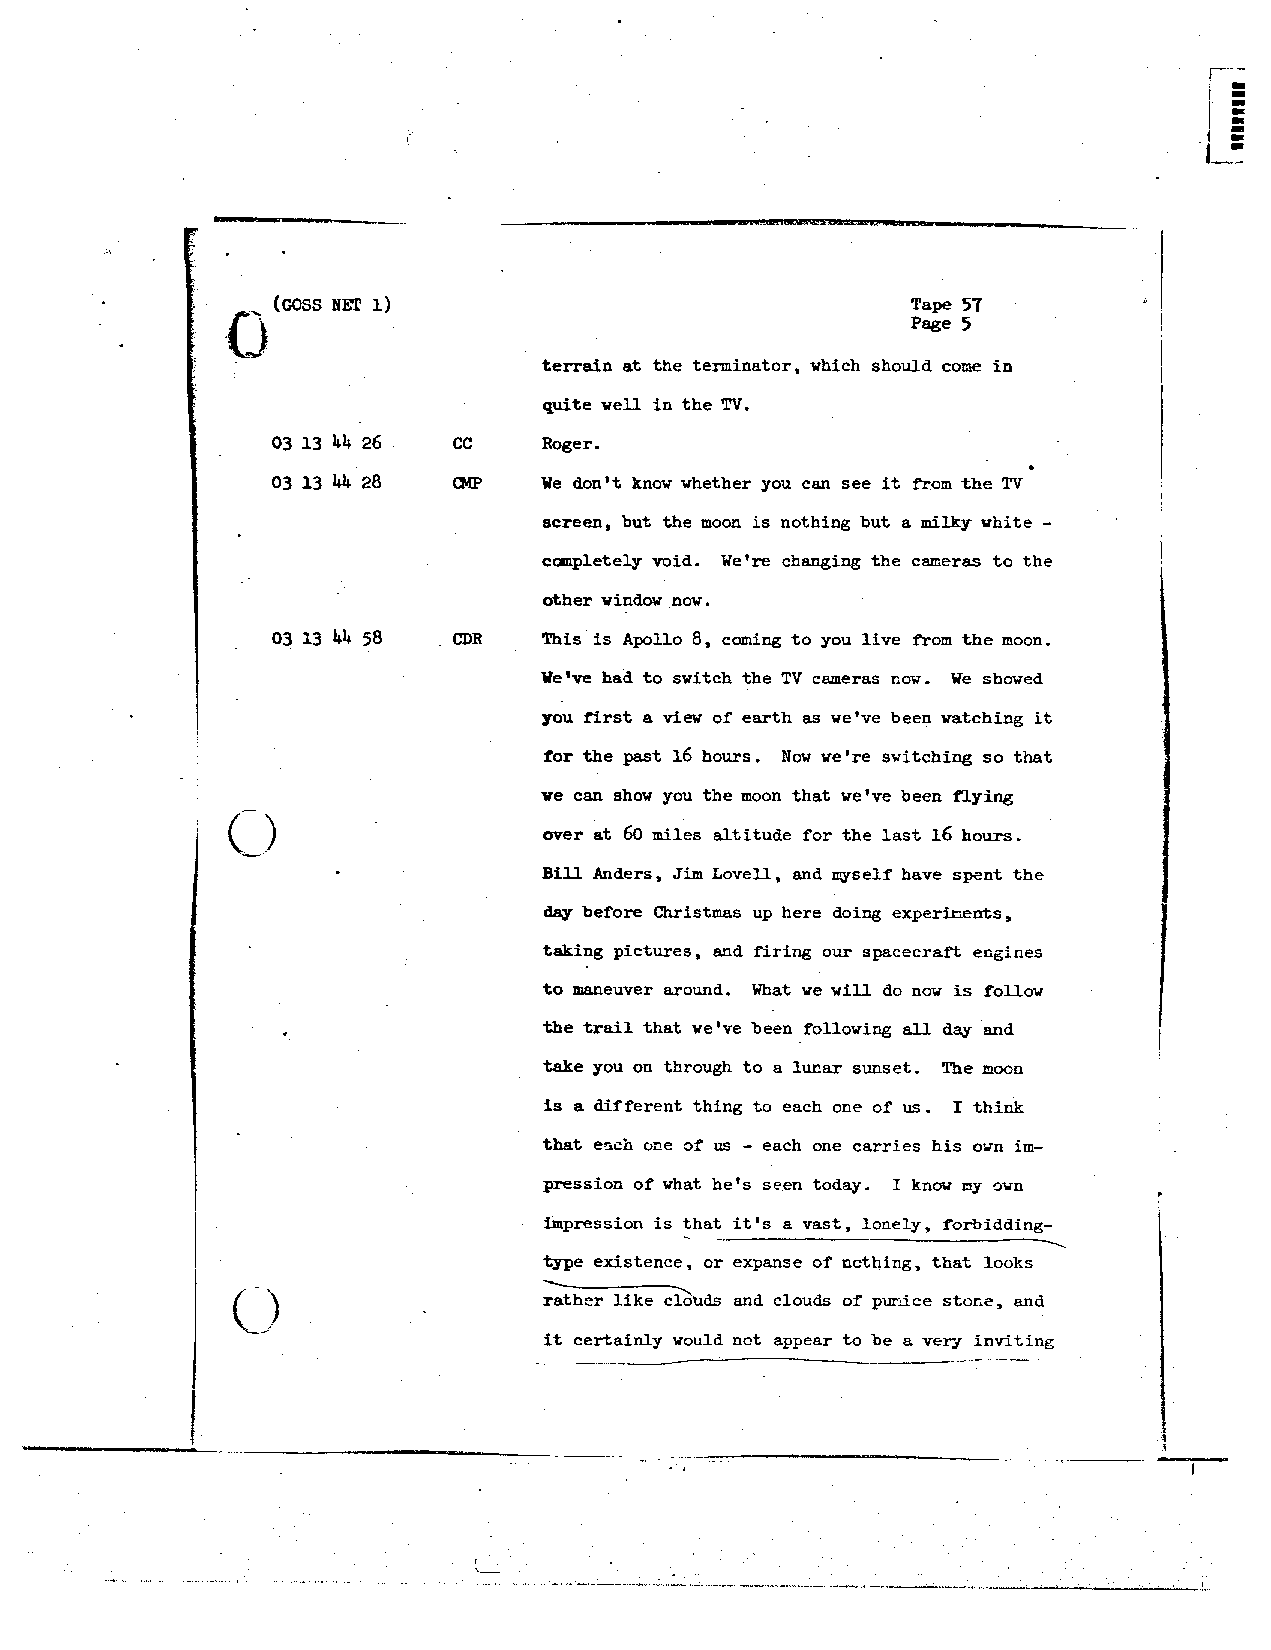 Page 454 of Apollo 8's original transcript